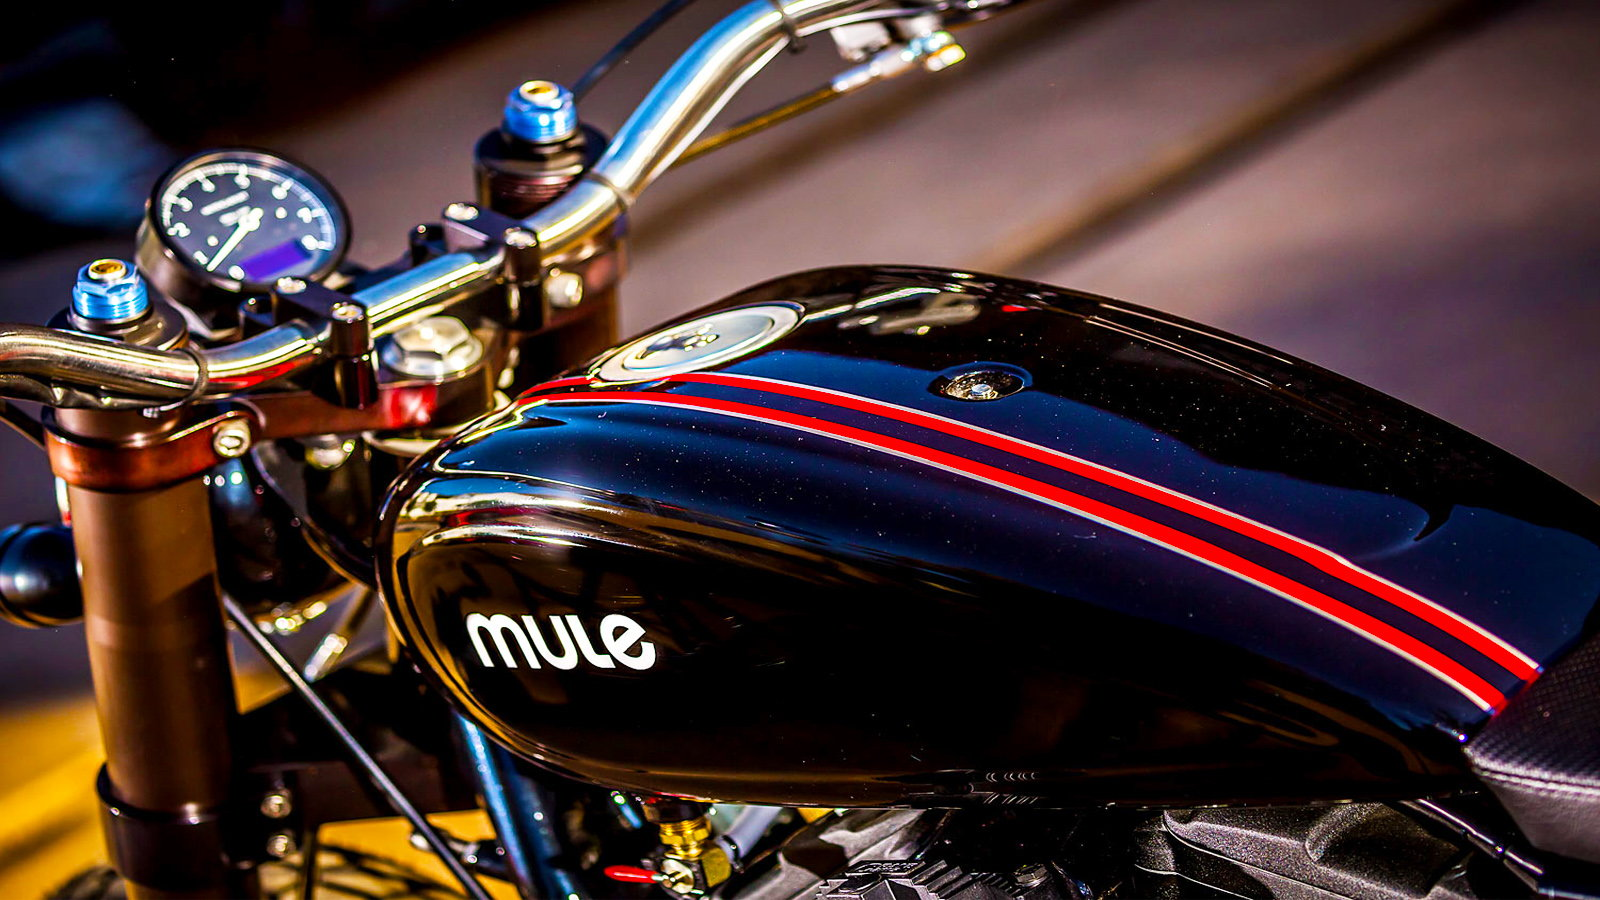 883 Tracker From Mule Motorcycles is Rupert's Ride | Hdforums